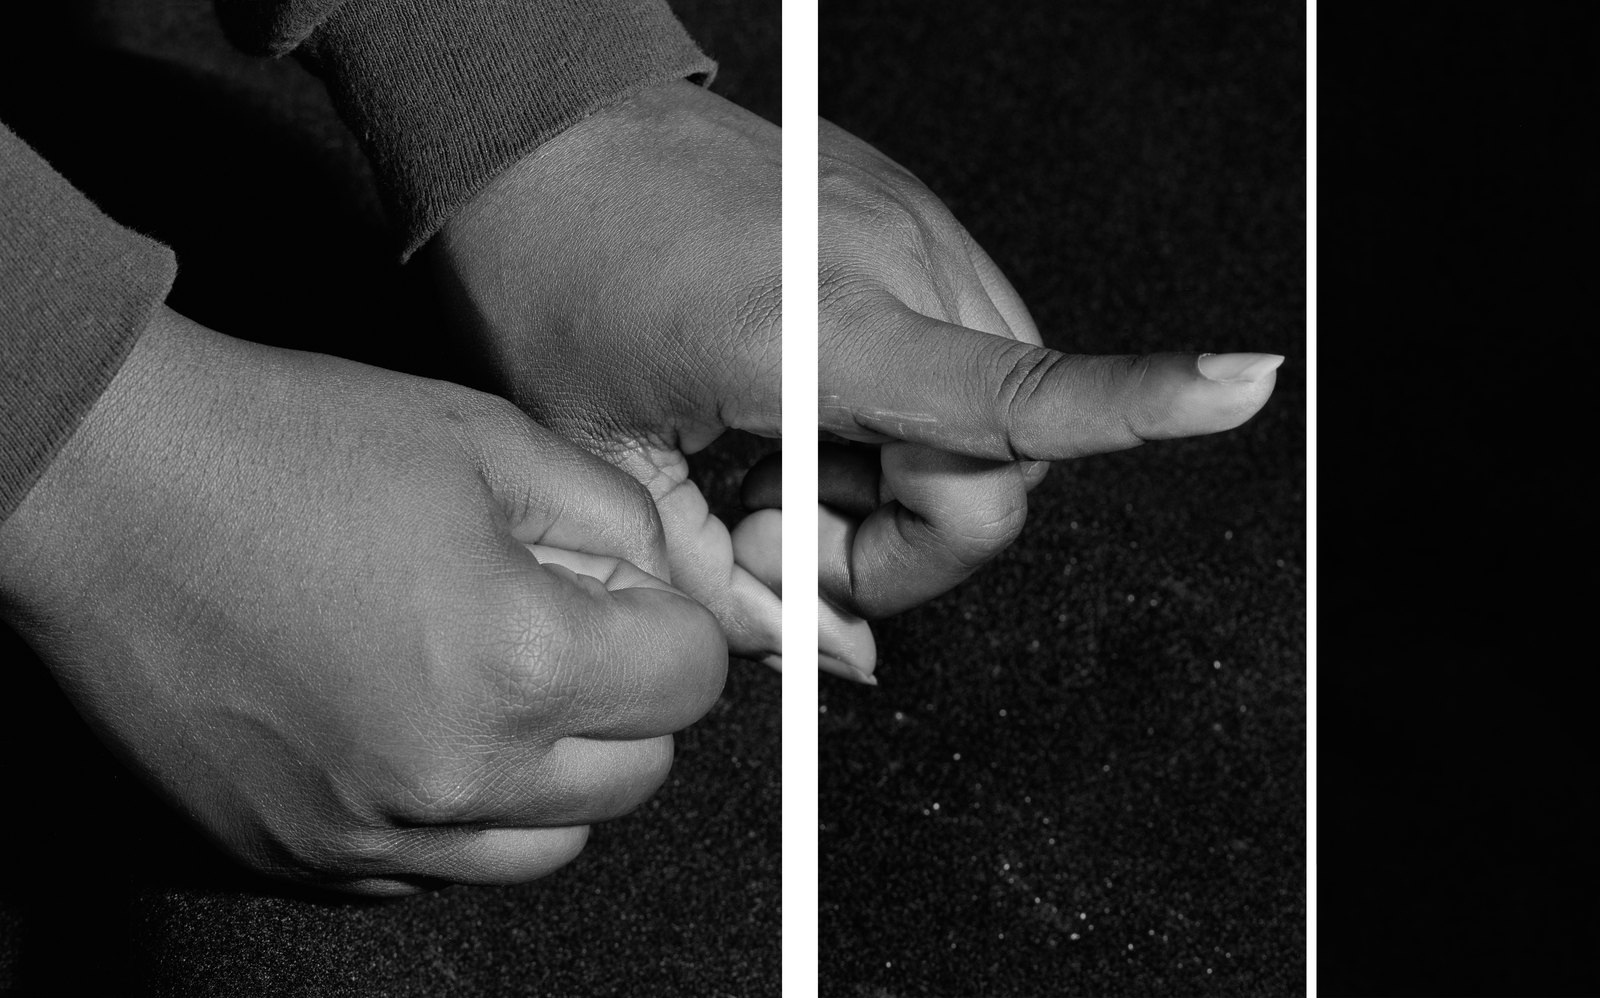 CC_Sara_Cwynar_Hands (Re-enactment) - Diptych